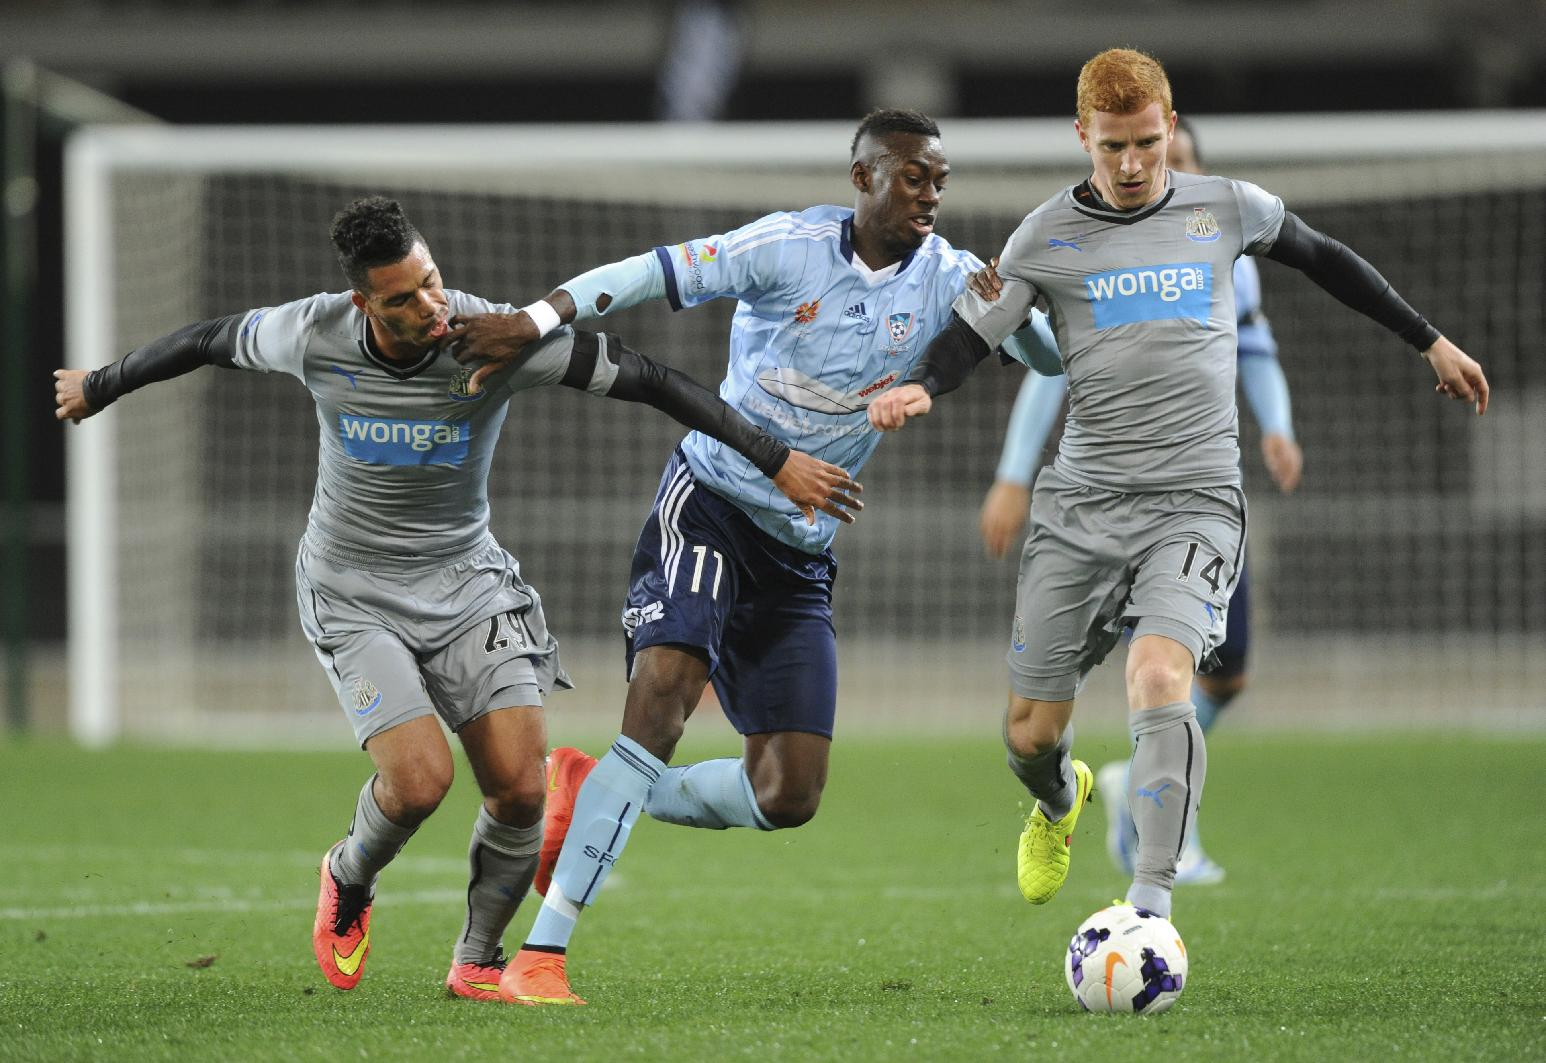 Newcastle United's Jack Colback, right, controls the ball as Emmanuel Riviere holds back Sydney FC's Bernie Ibini-Isei, center, during the first match of the Football United Tour at Forsyth Barr Stadium, Dunedin, New Zealand, Tuesday, July 22, 2014